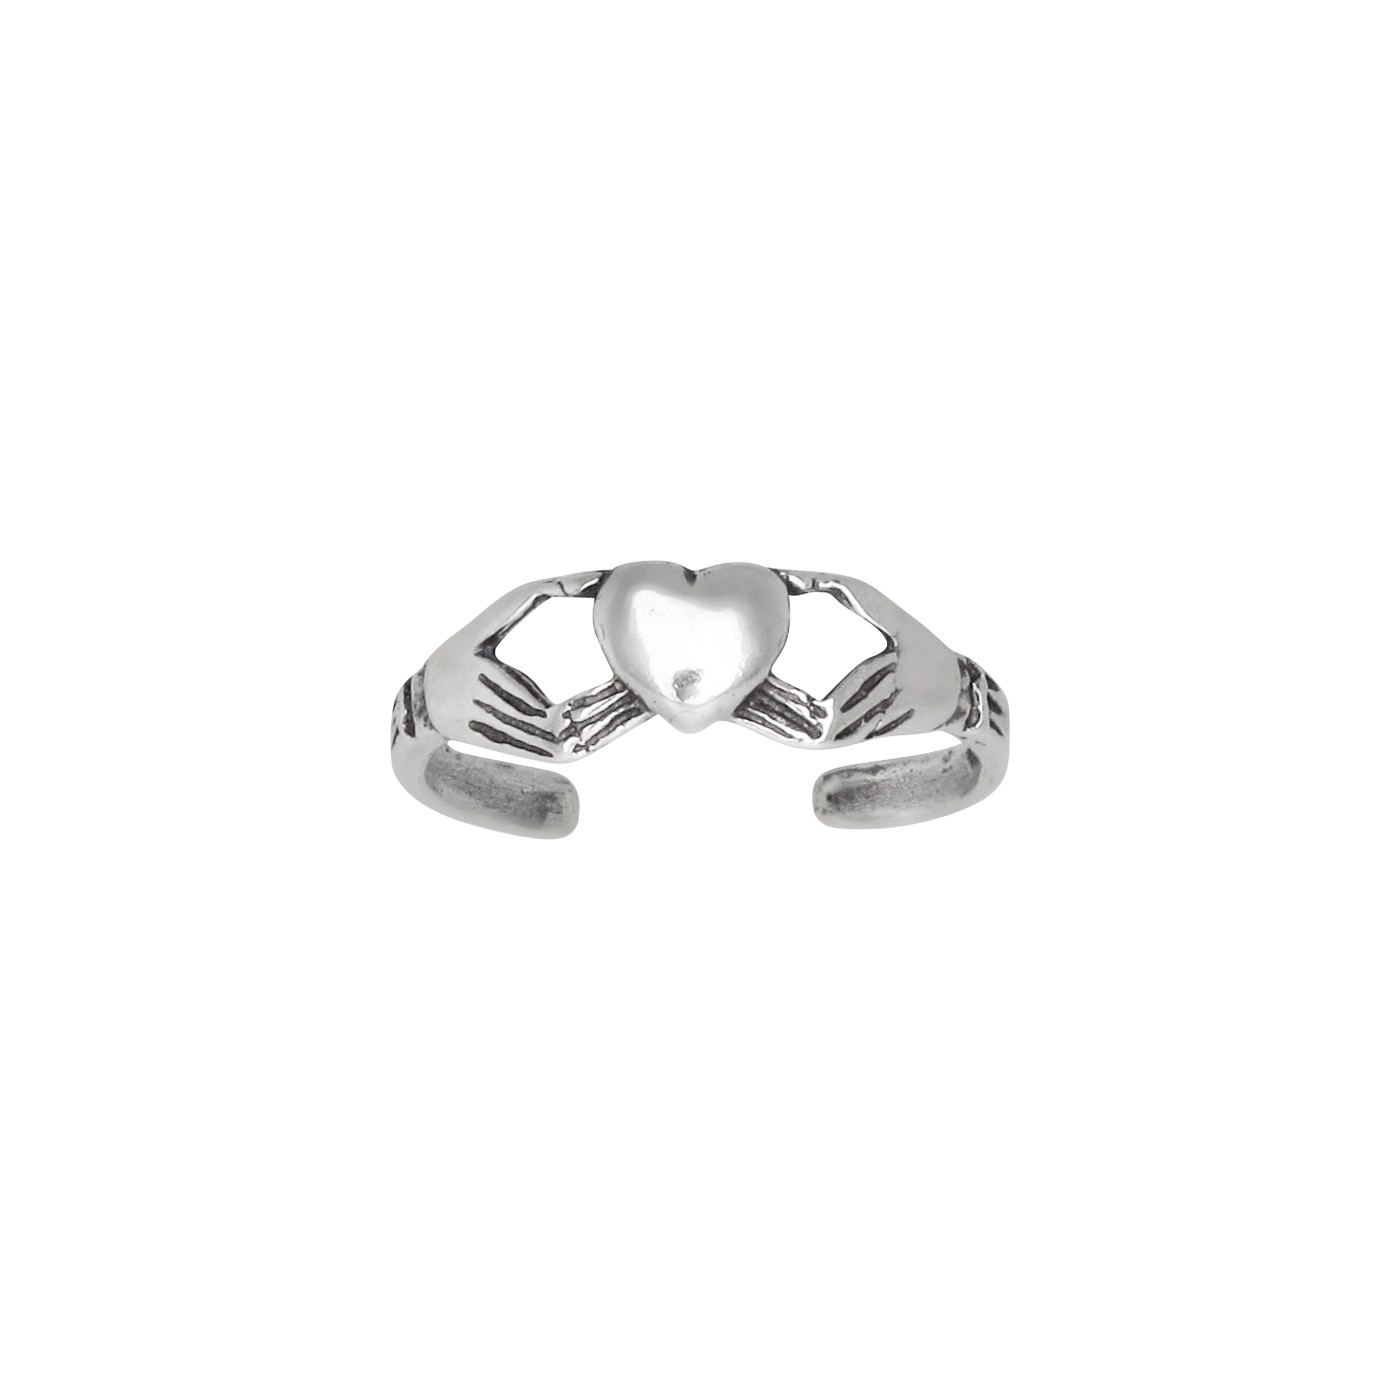 Sterling Silver .925 Irish Claddagh Heart Toe Ring Adjustable Size Within Recent Claddagh Toe Rings (Gallery 2 of 15)